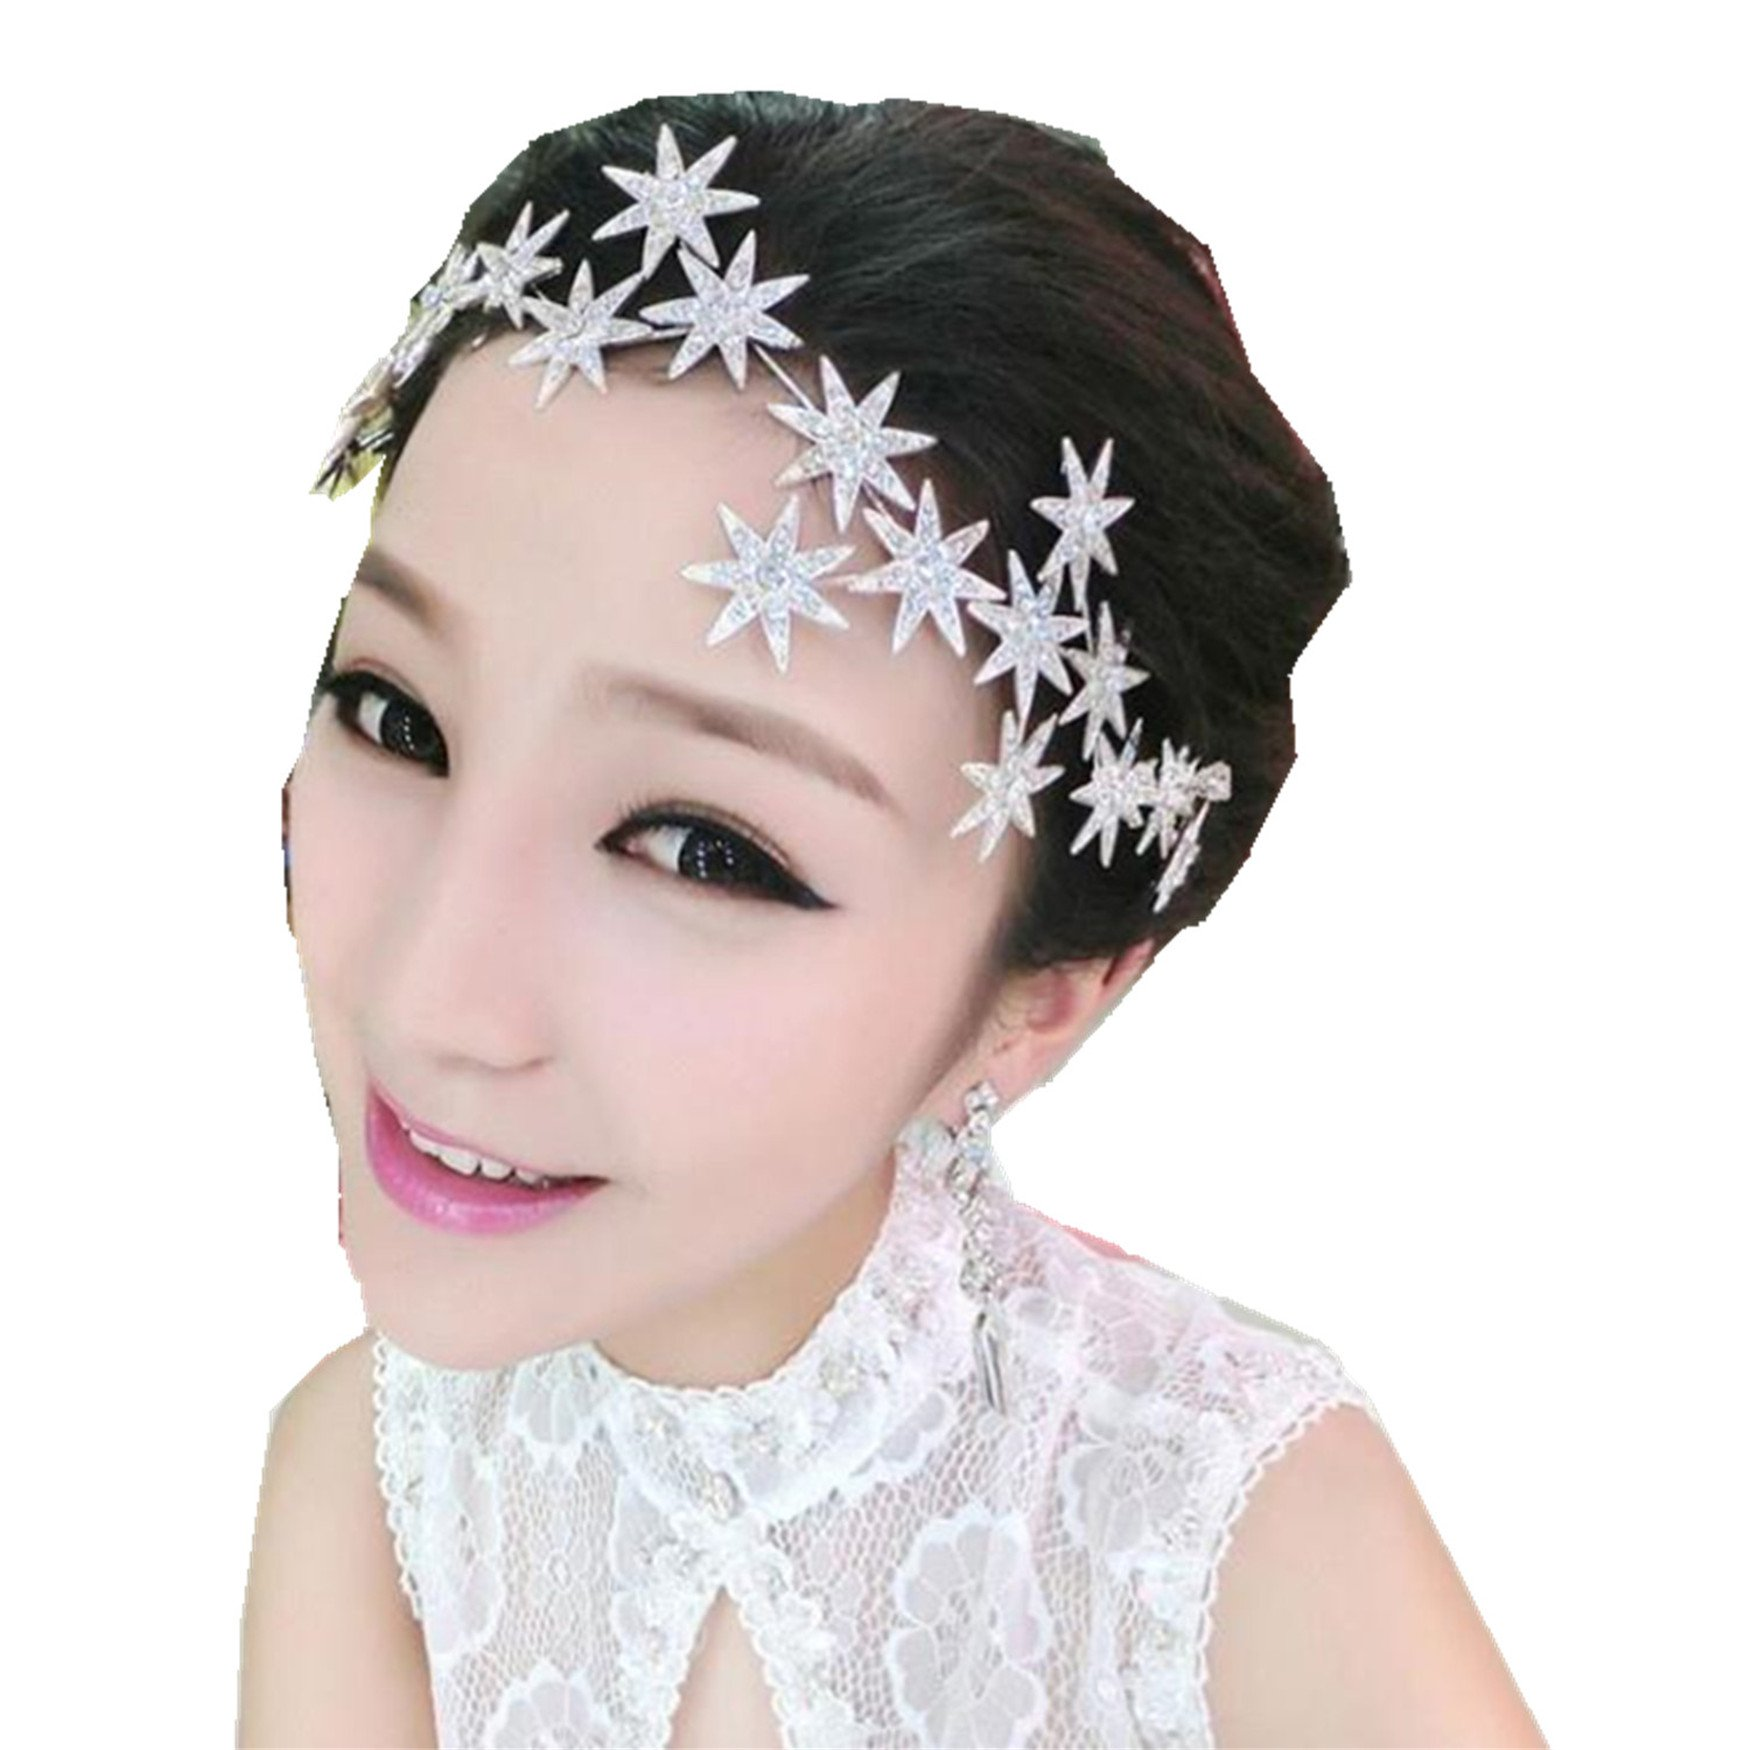 Wiipu Romantic Star Crystal Rhinestone Tiara Bridal Hair Accessories (A1717) (silver)